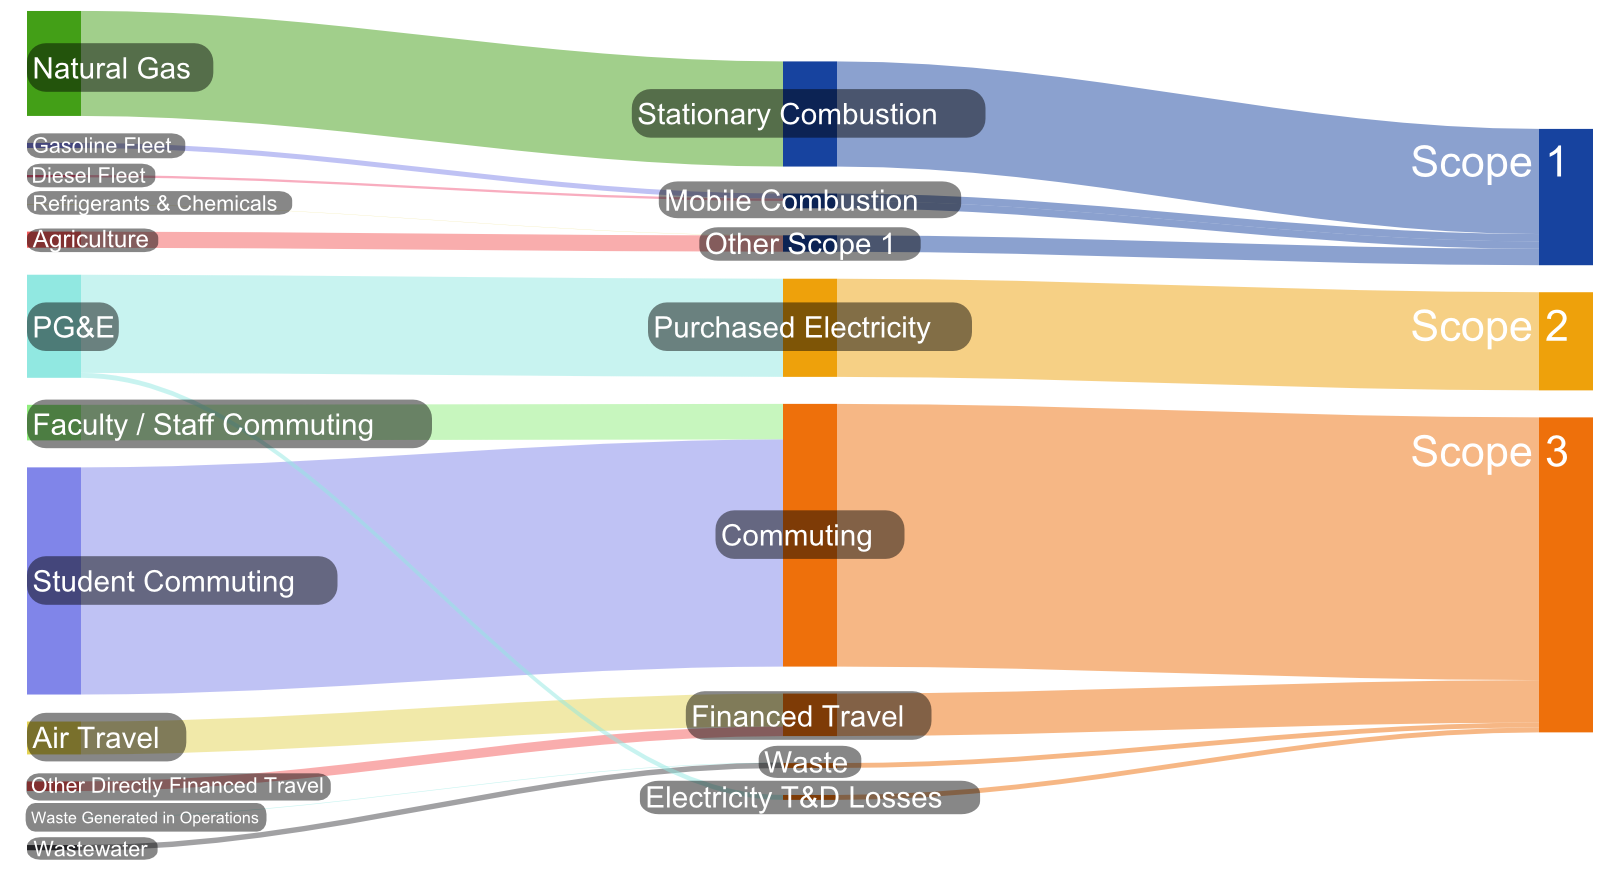 Sankey Diagram:  GHG Emissions Sources and Scopes  (click to view full size)